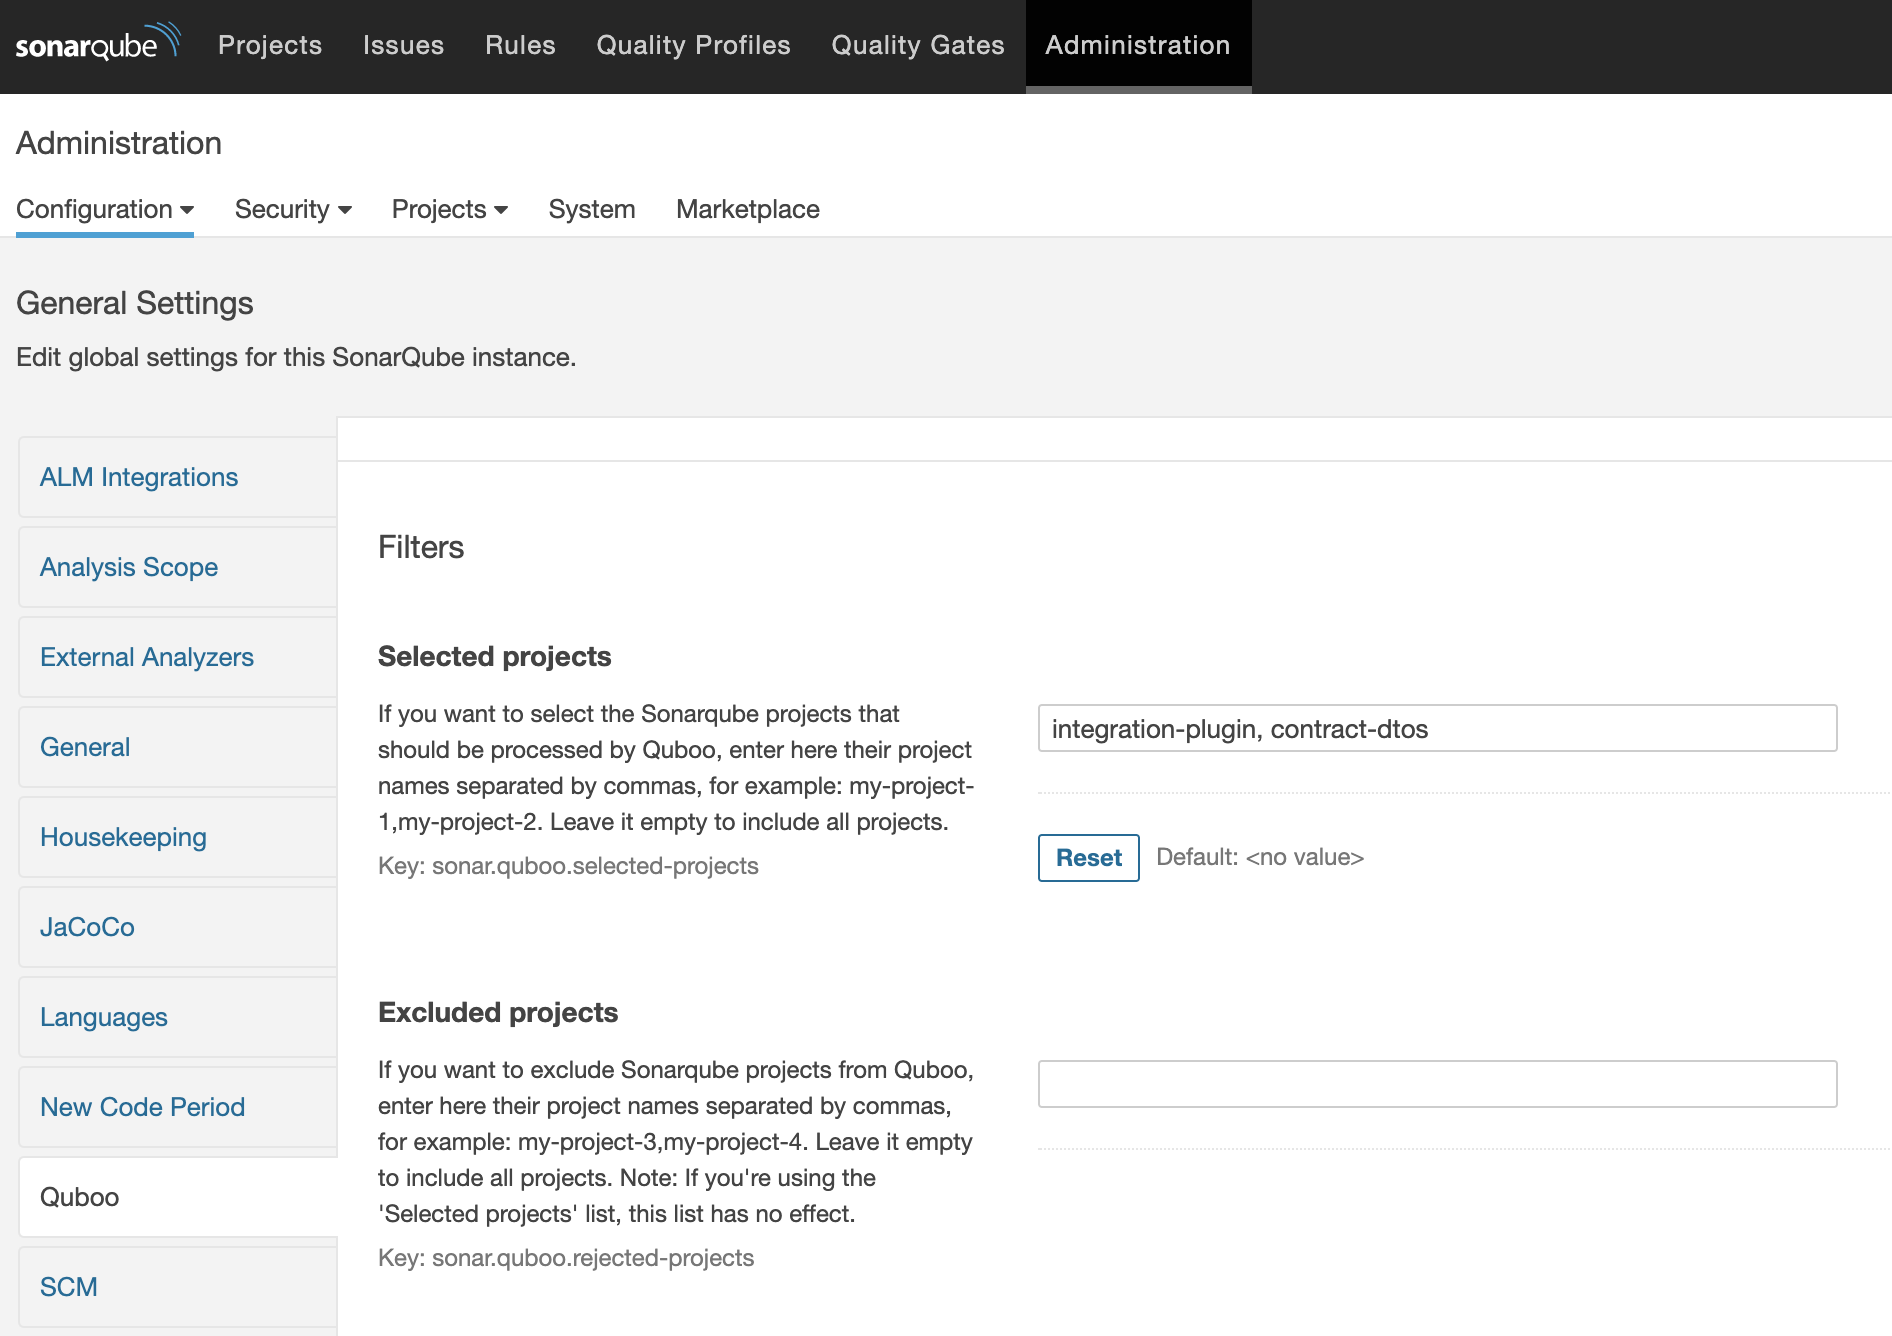 Project Inclusion/Exclusion settings